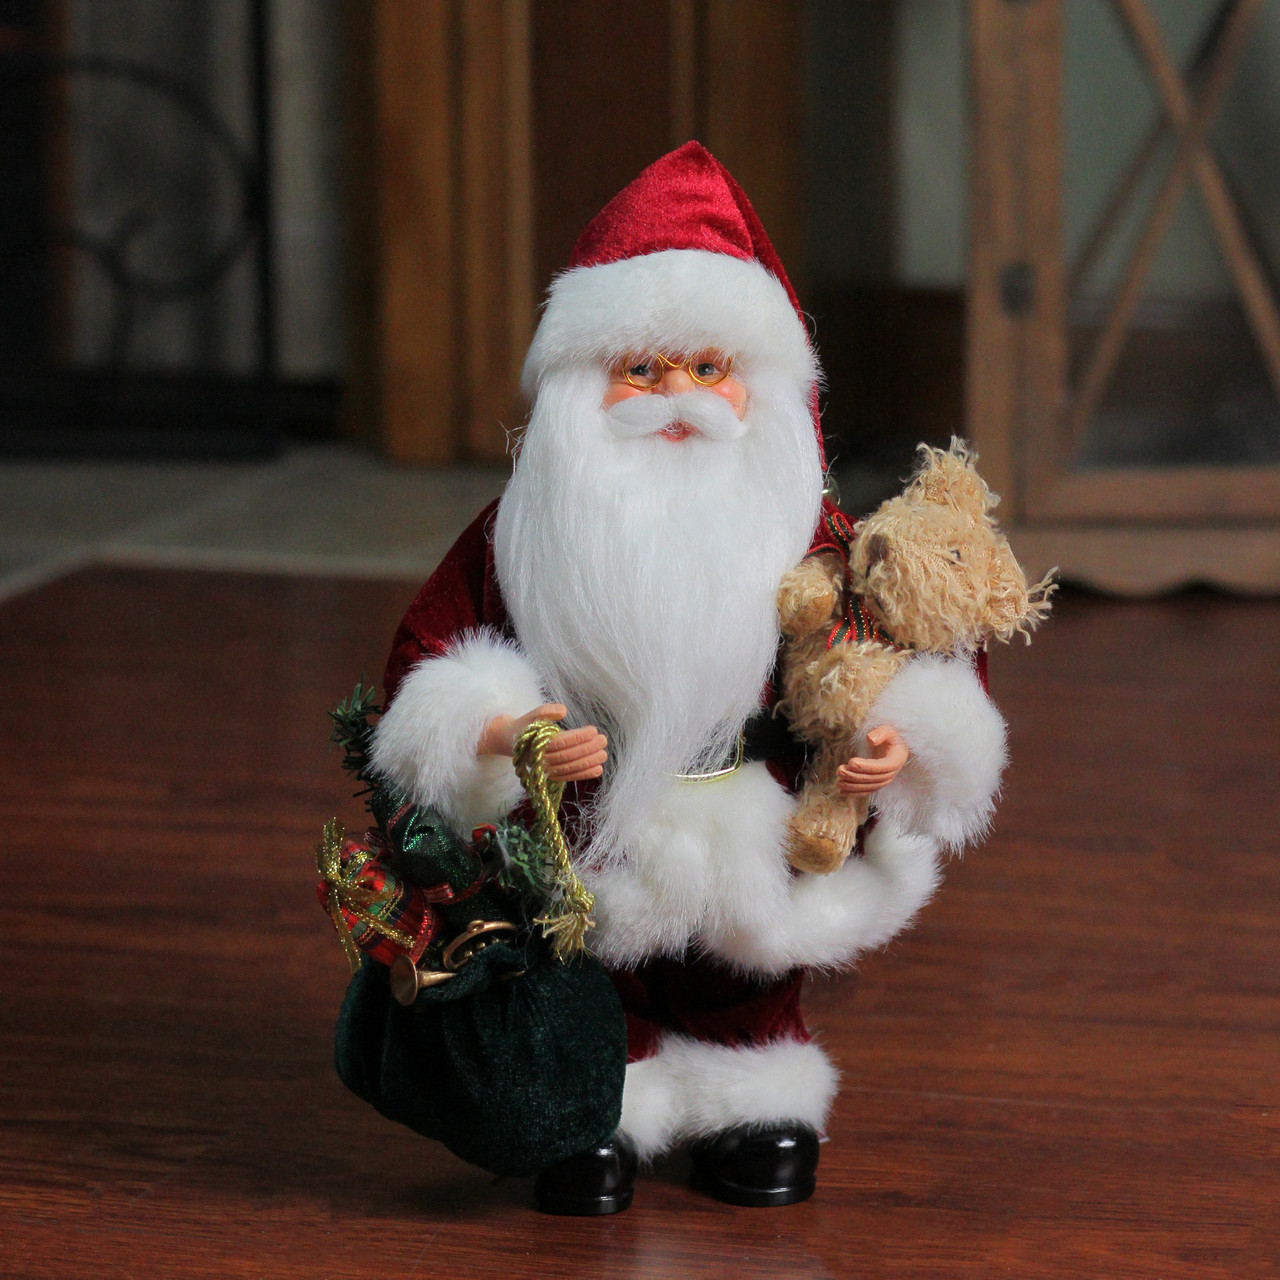 12 Santa Claus Holding A Presents A Green Gift Bag Christmas Figure Christmas Central